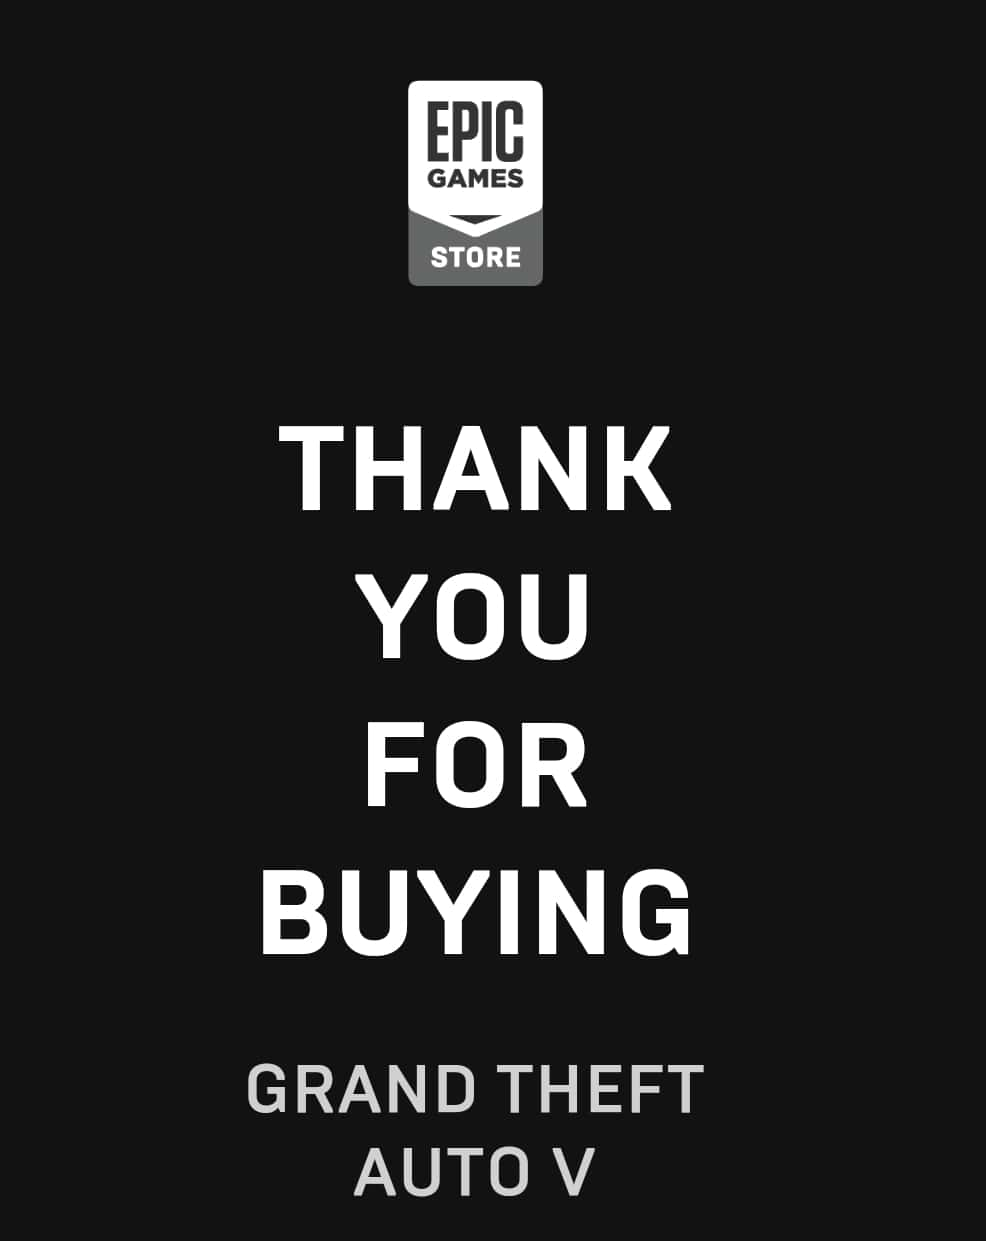 Epic games store gta v free